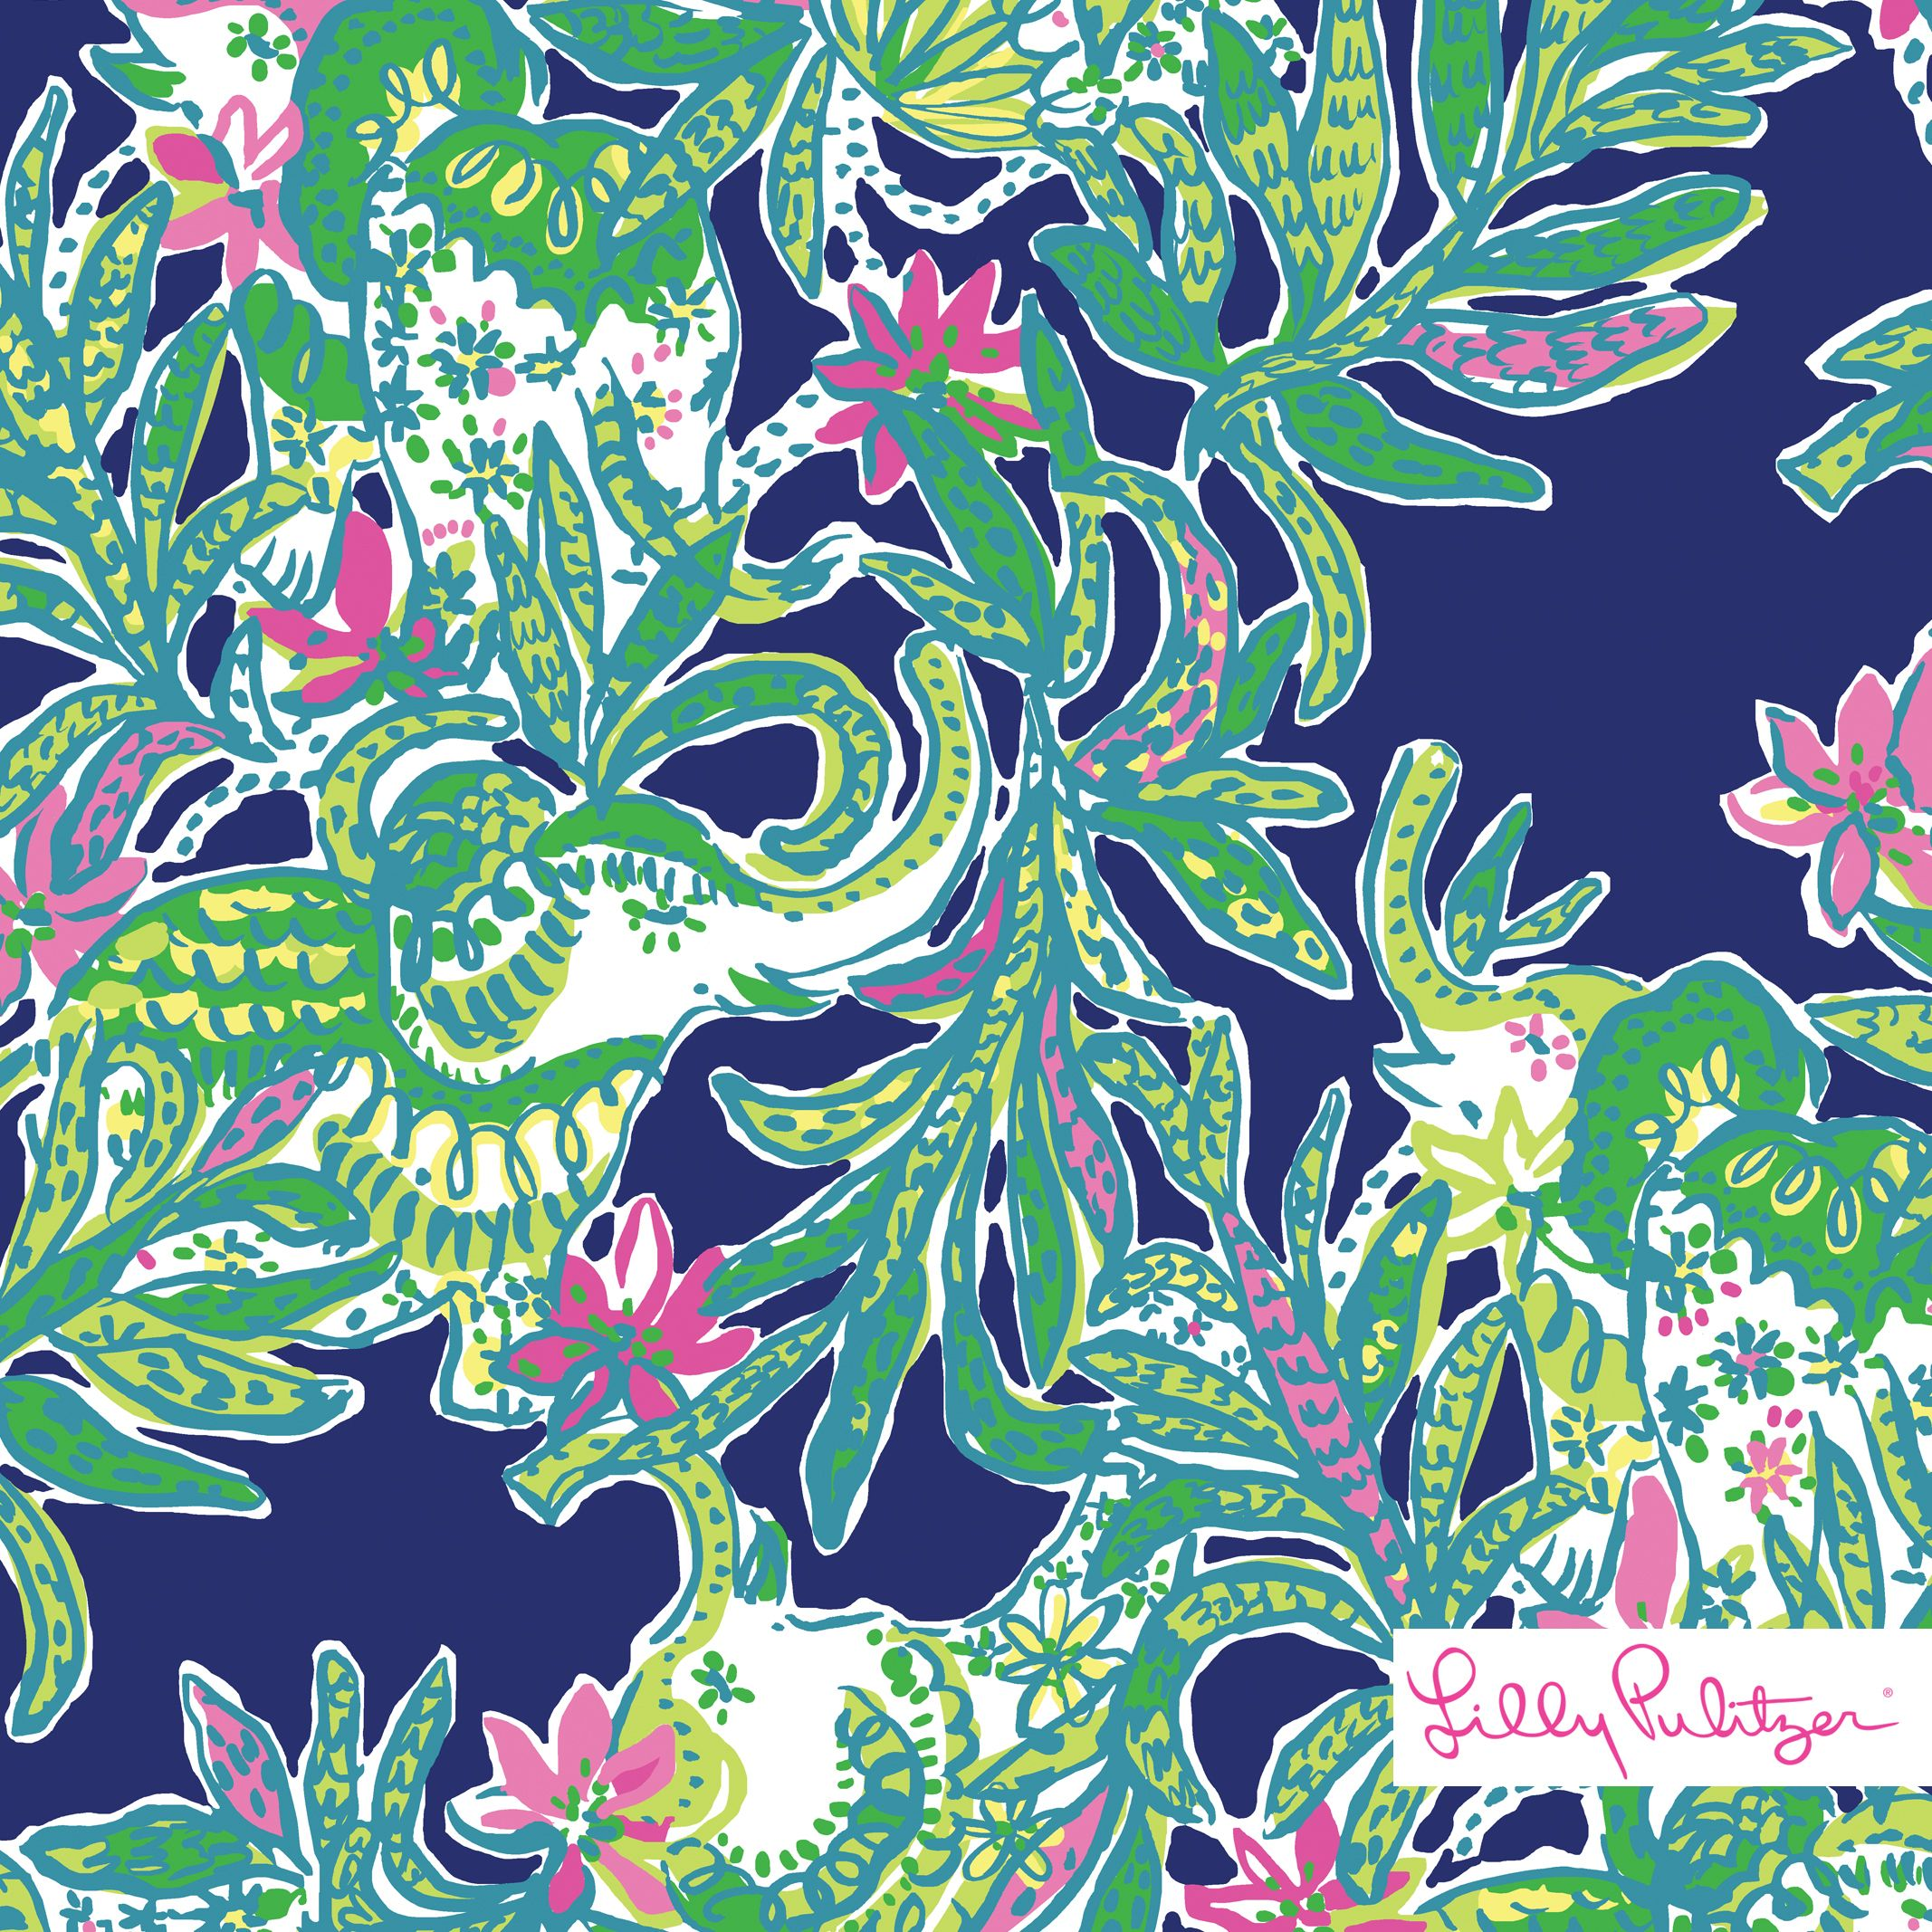 Lilly Pulitzer print with green elephants and pink flower accents on a bright navy background